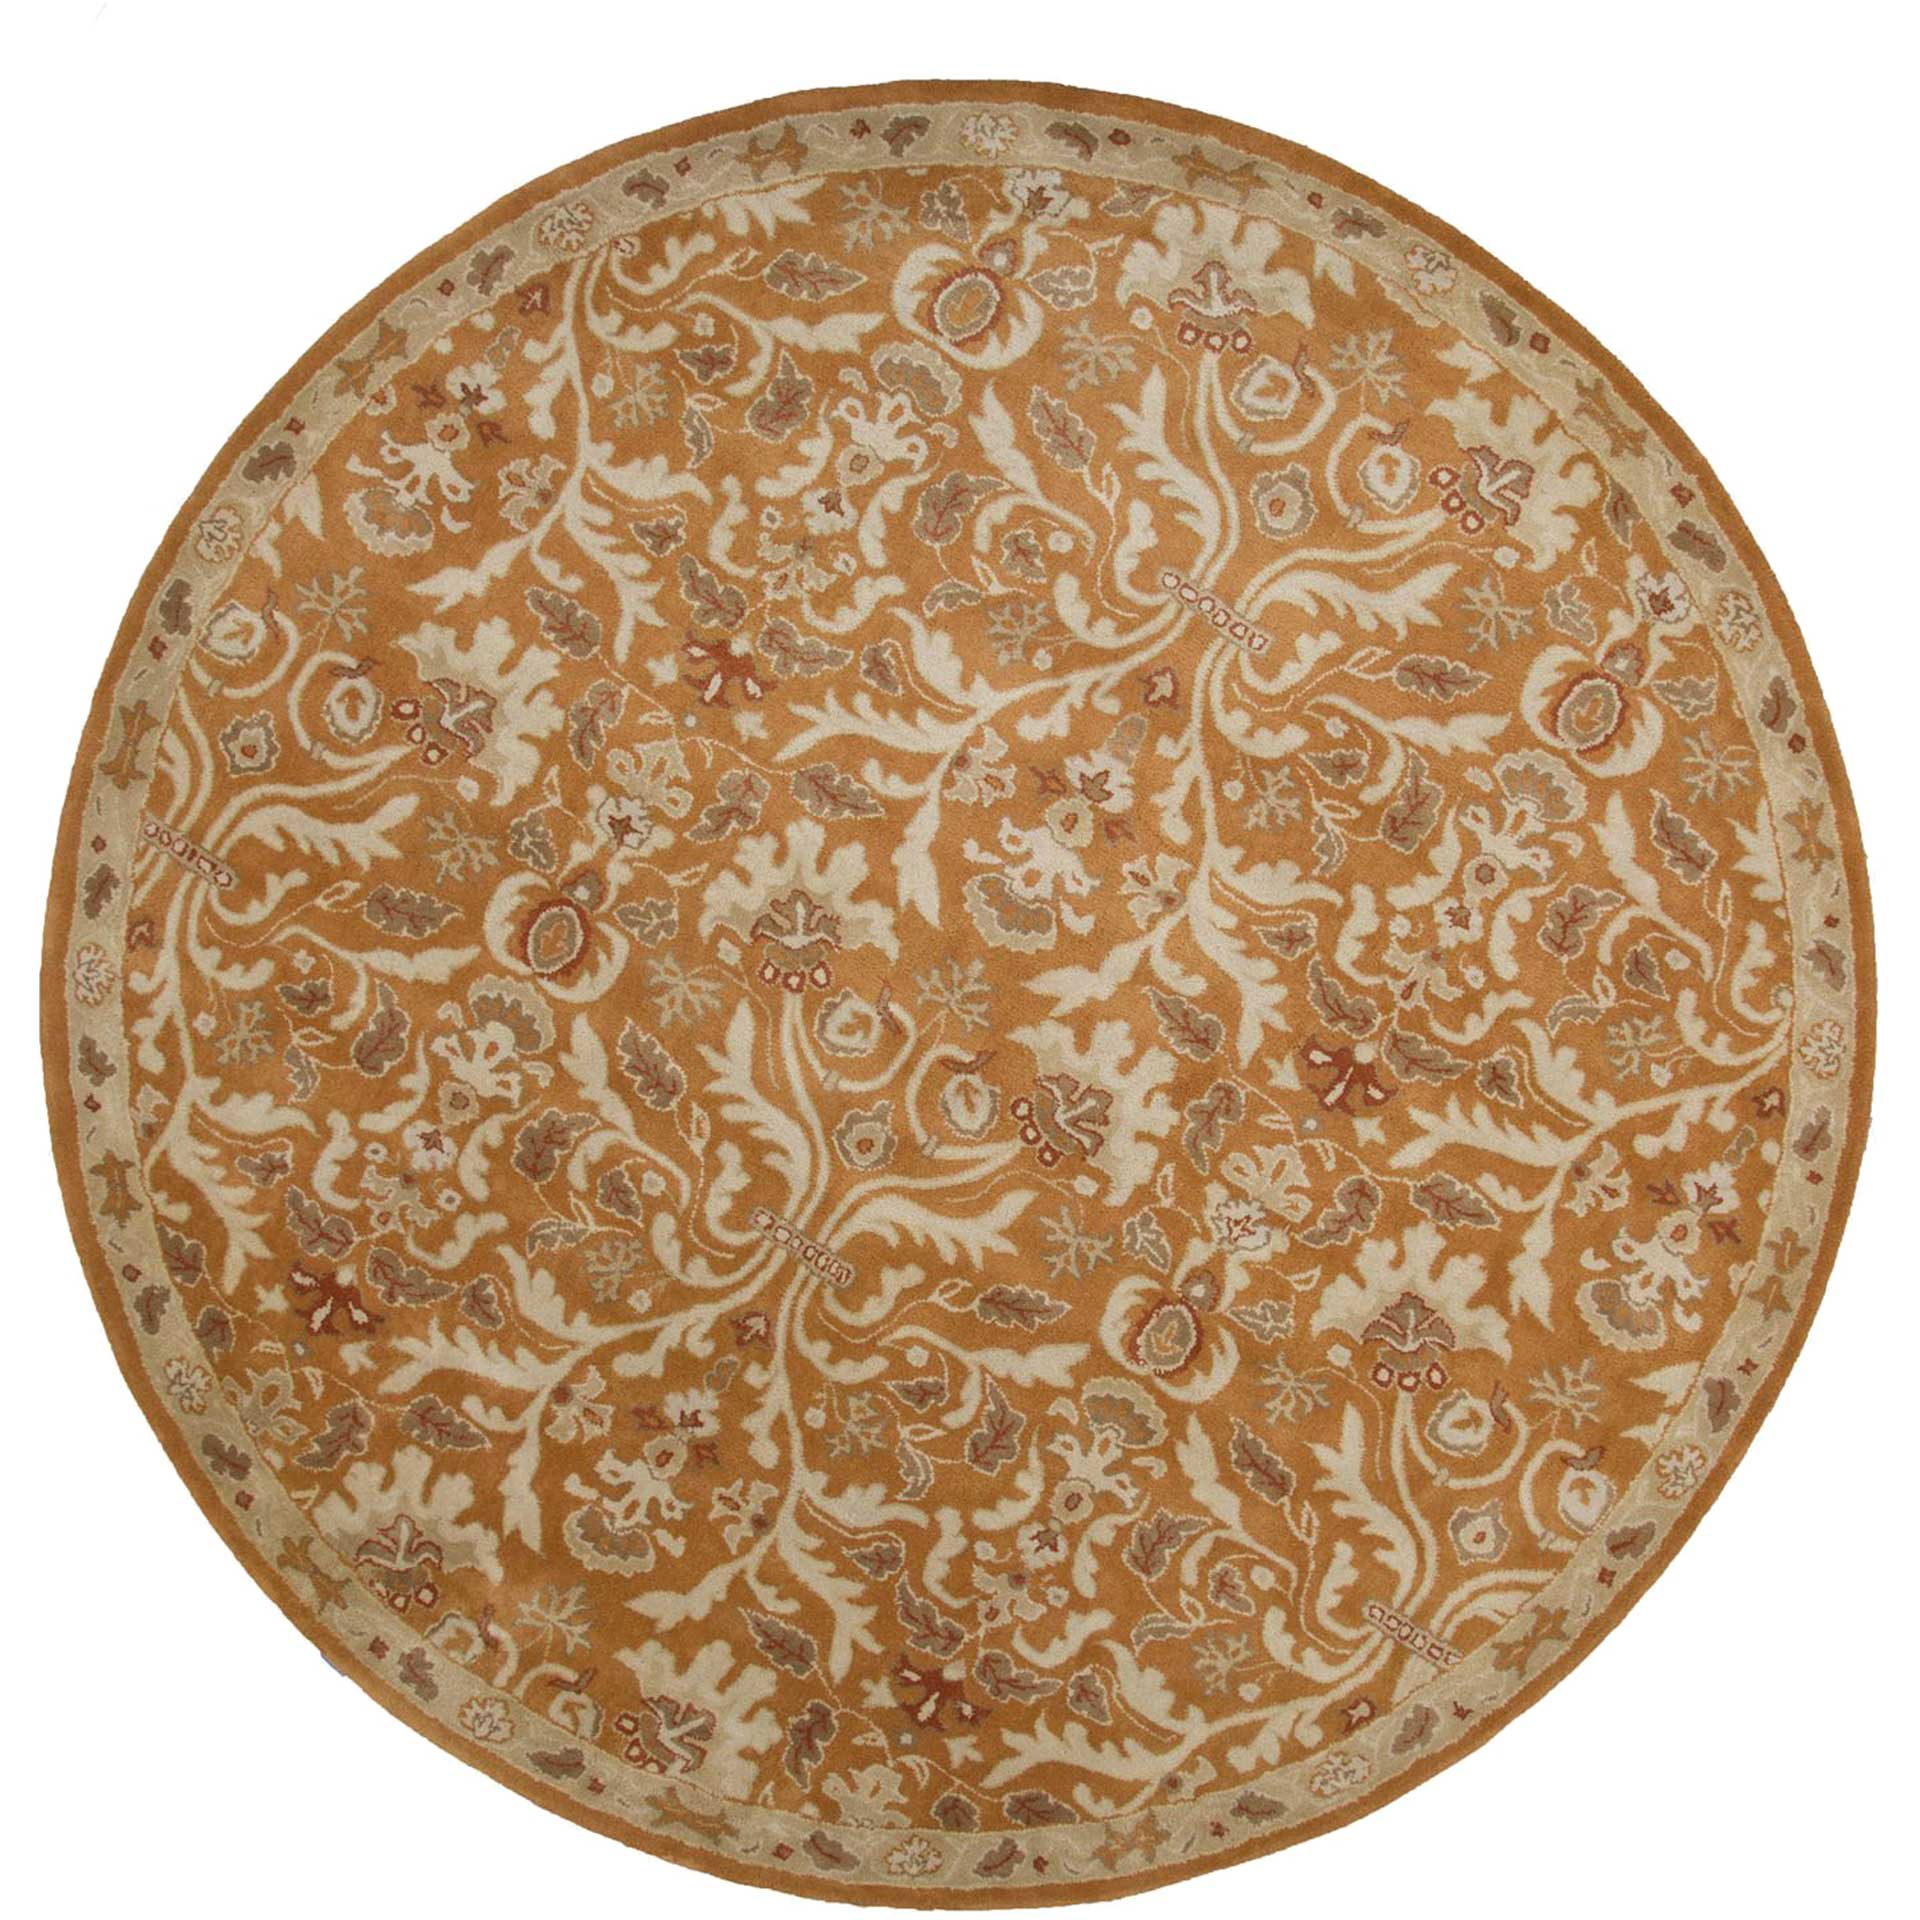 Poeme Corsica Amber Glow Round Rug